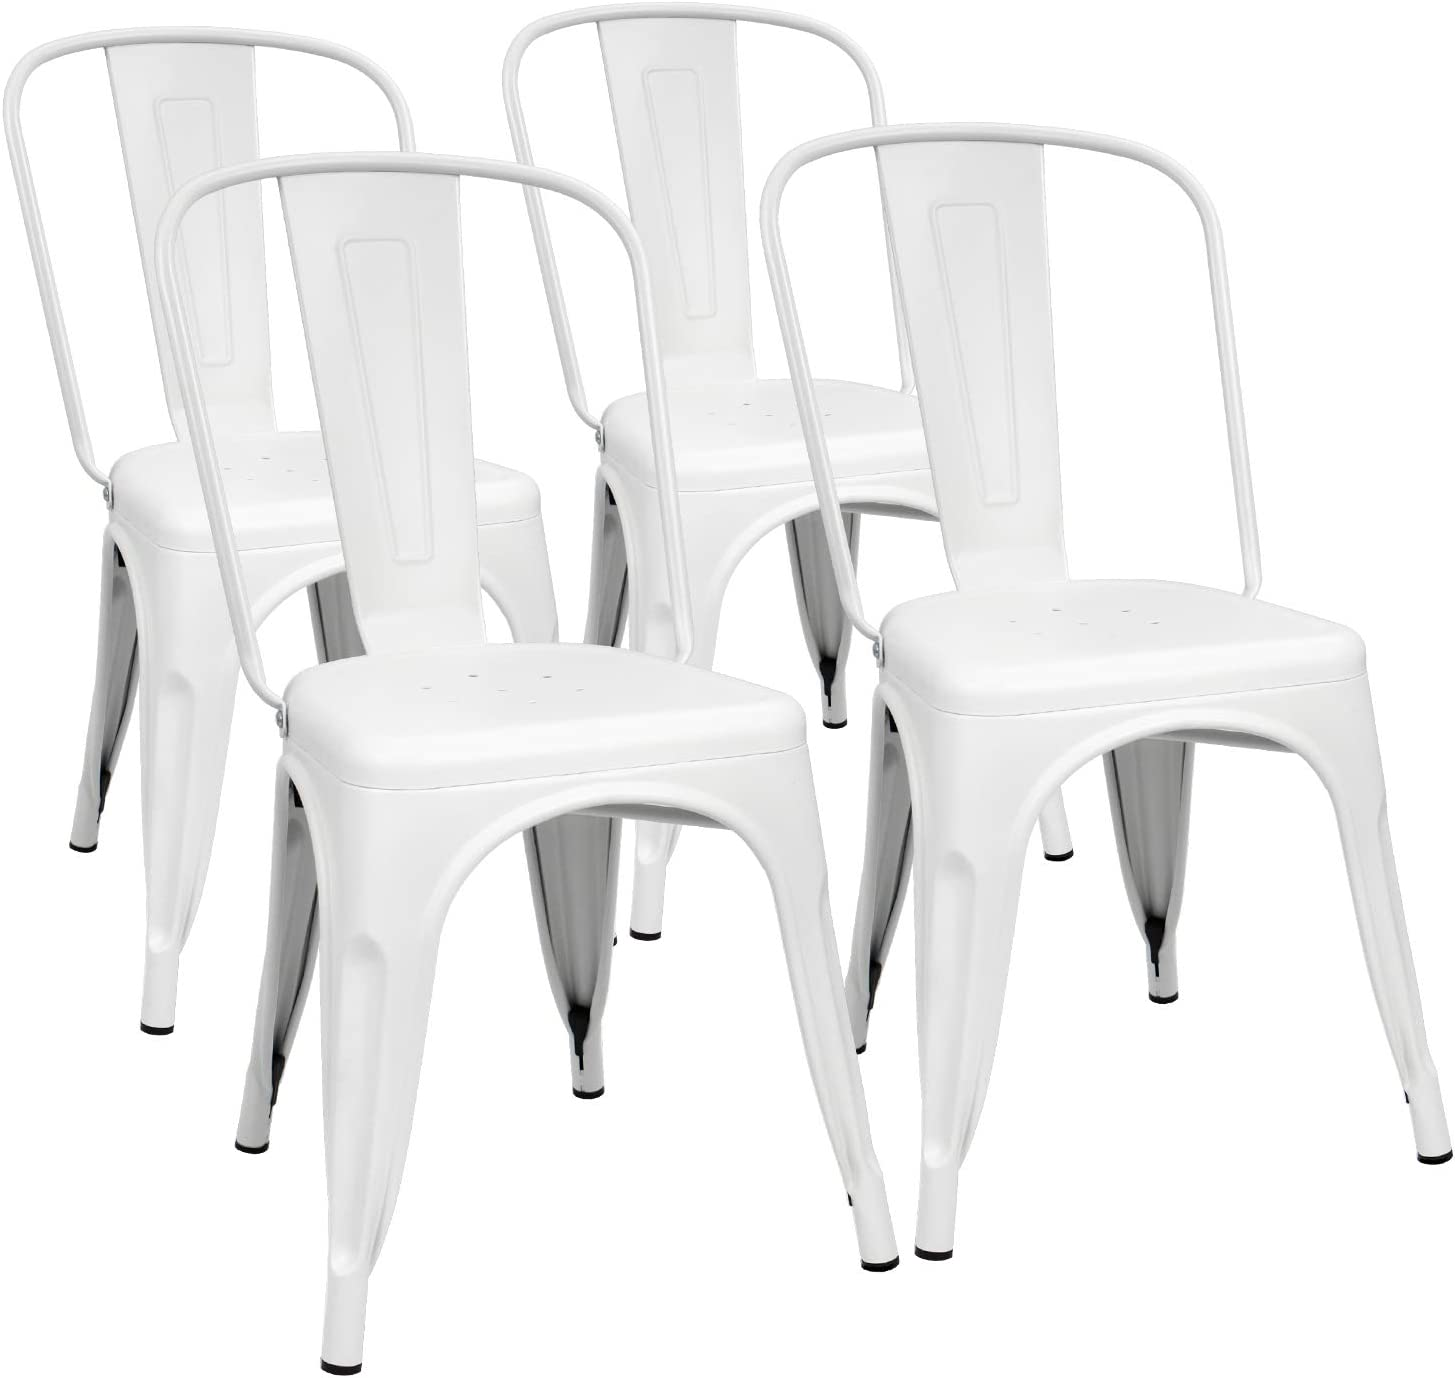 Furmax Metal Dining Chair Indoor-Outdoor Use Stackable Classic Trattoria Chair Chic Dining Bistro Cafe Side Metal Chairs Set of 4 (Ivory White)